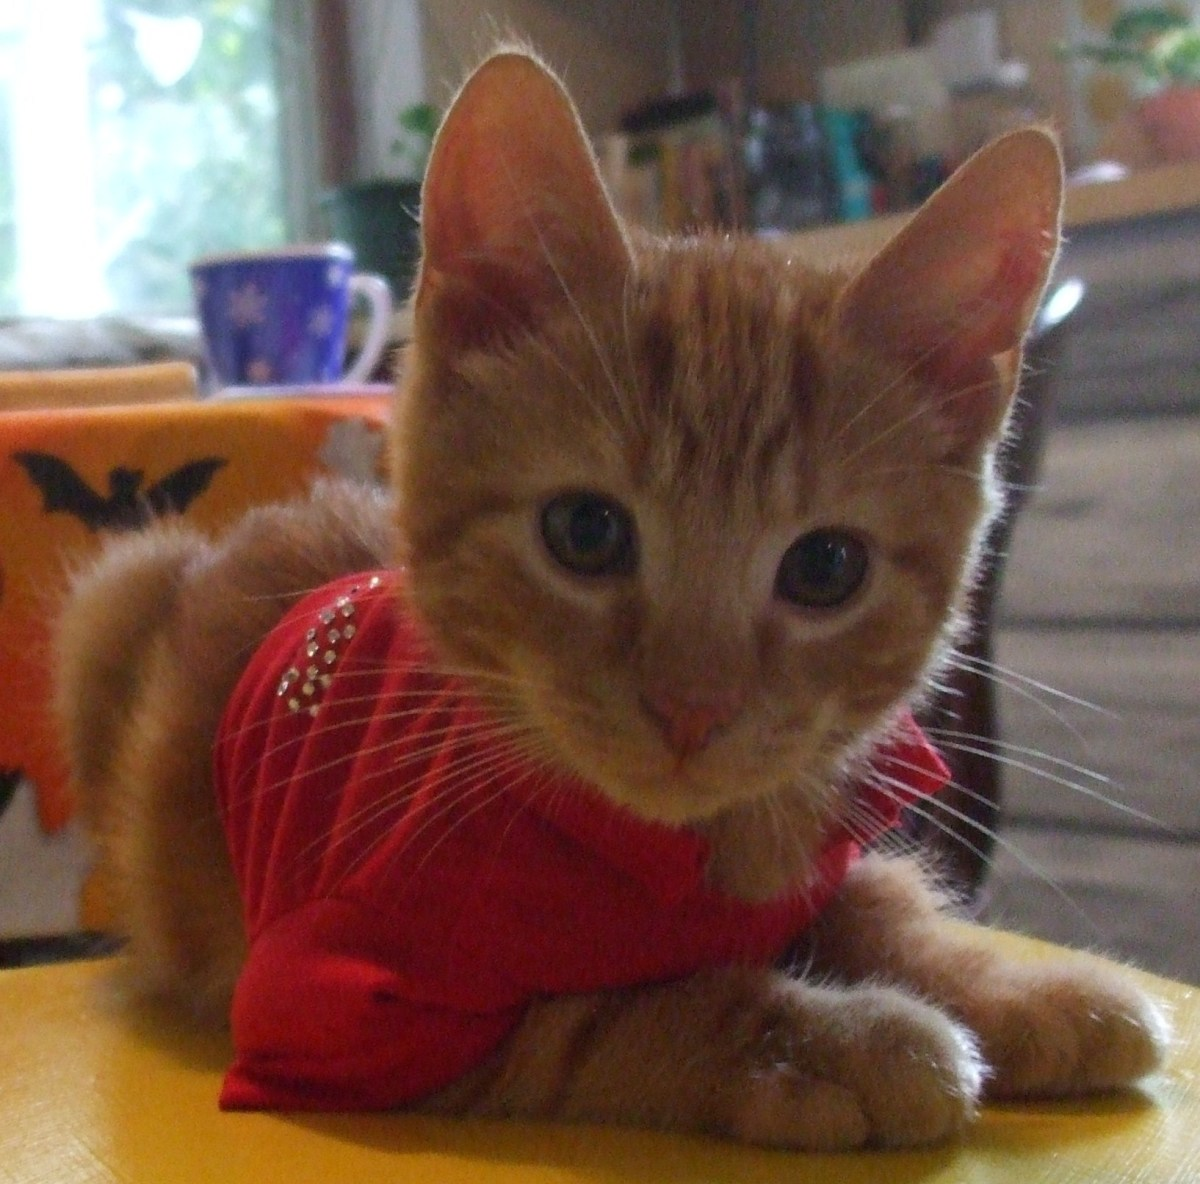 My cute little kitten Cincinnatus trying on the shirt part of the ladybug costume.